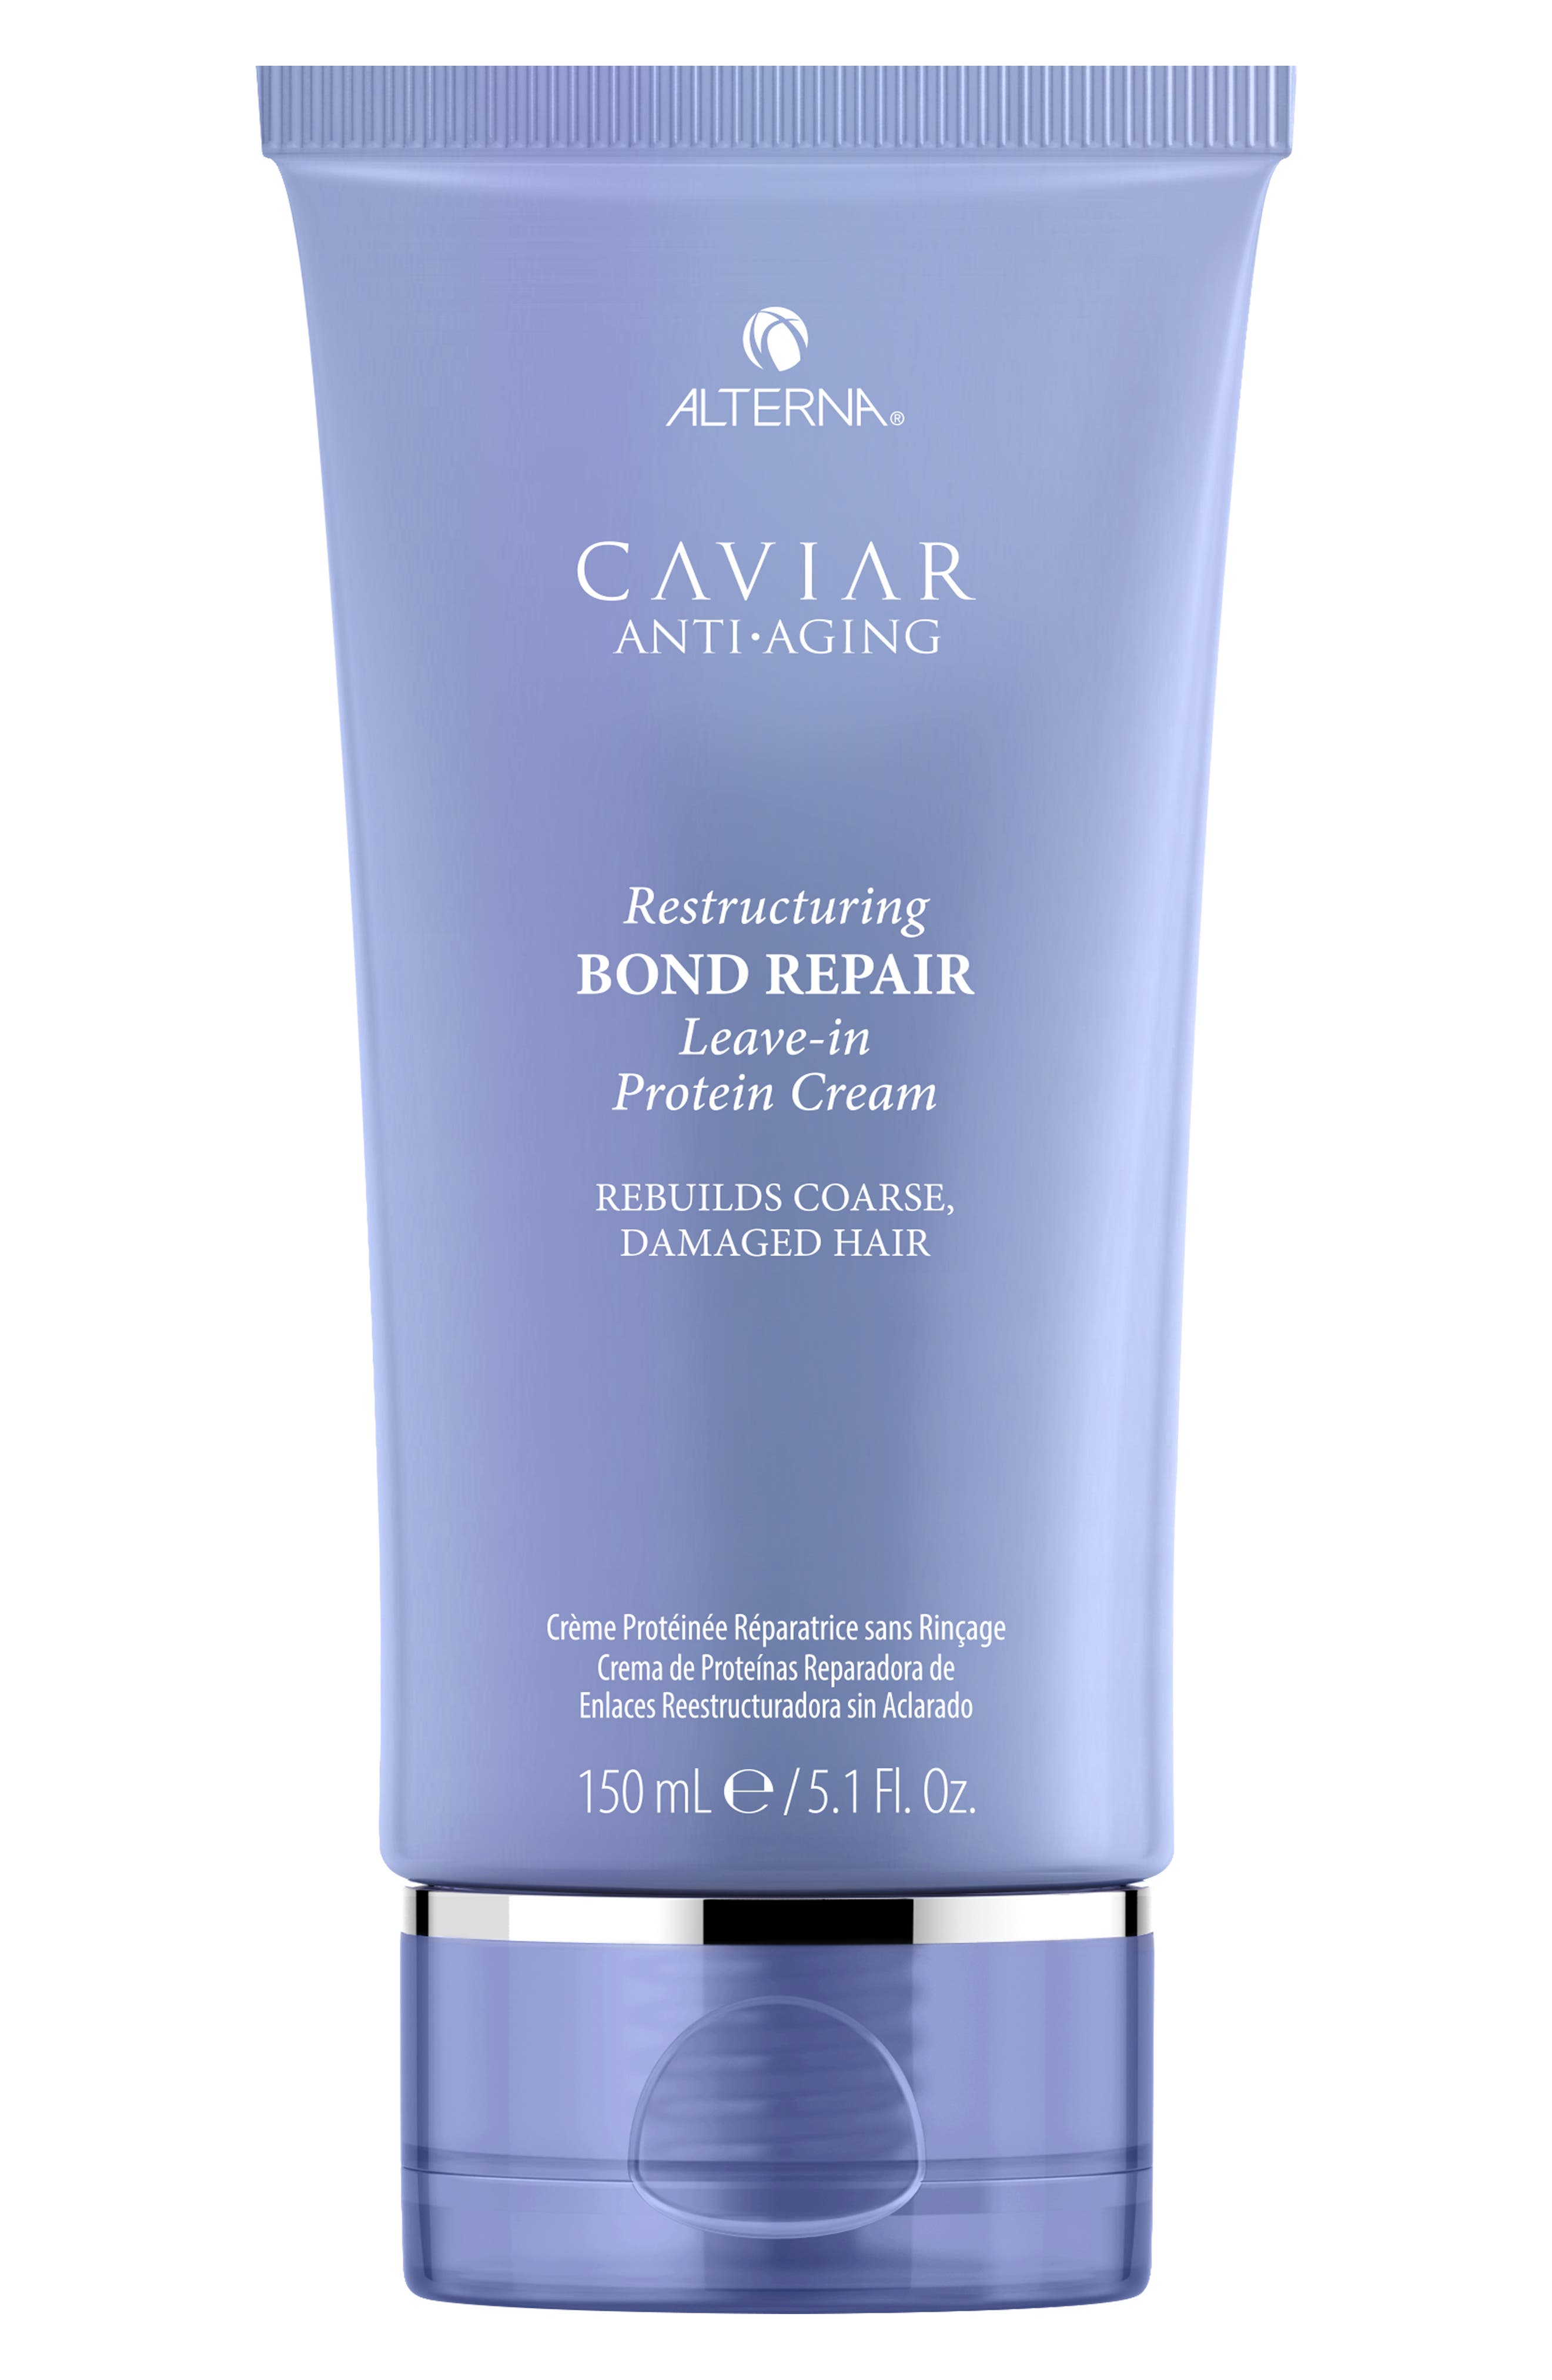 Caviar Anti-Aging Resturcuring Bond Repair Leave-in Protein Cream,                             Main thumbnail 1, color,                             NO COLOR